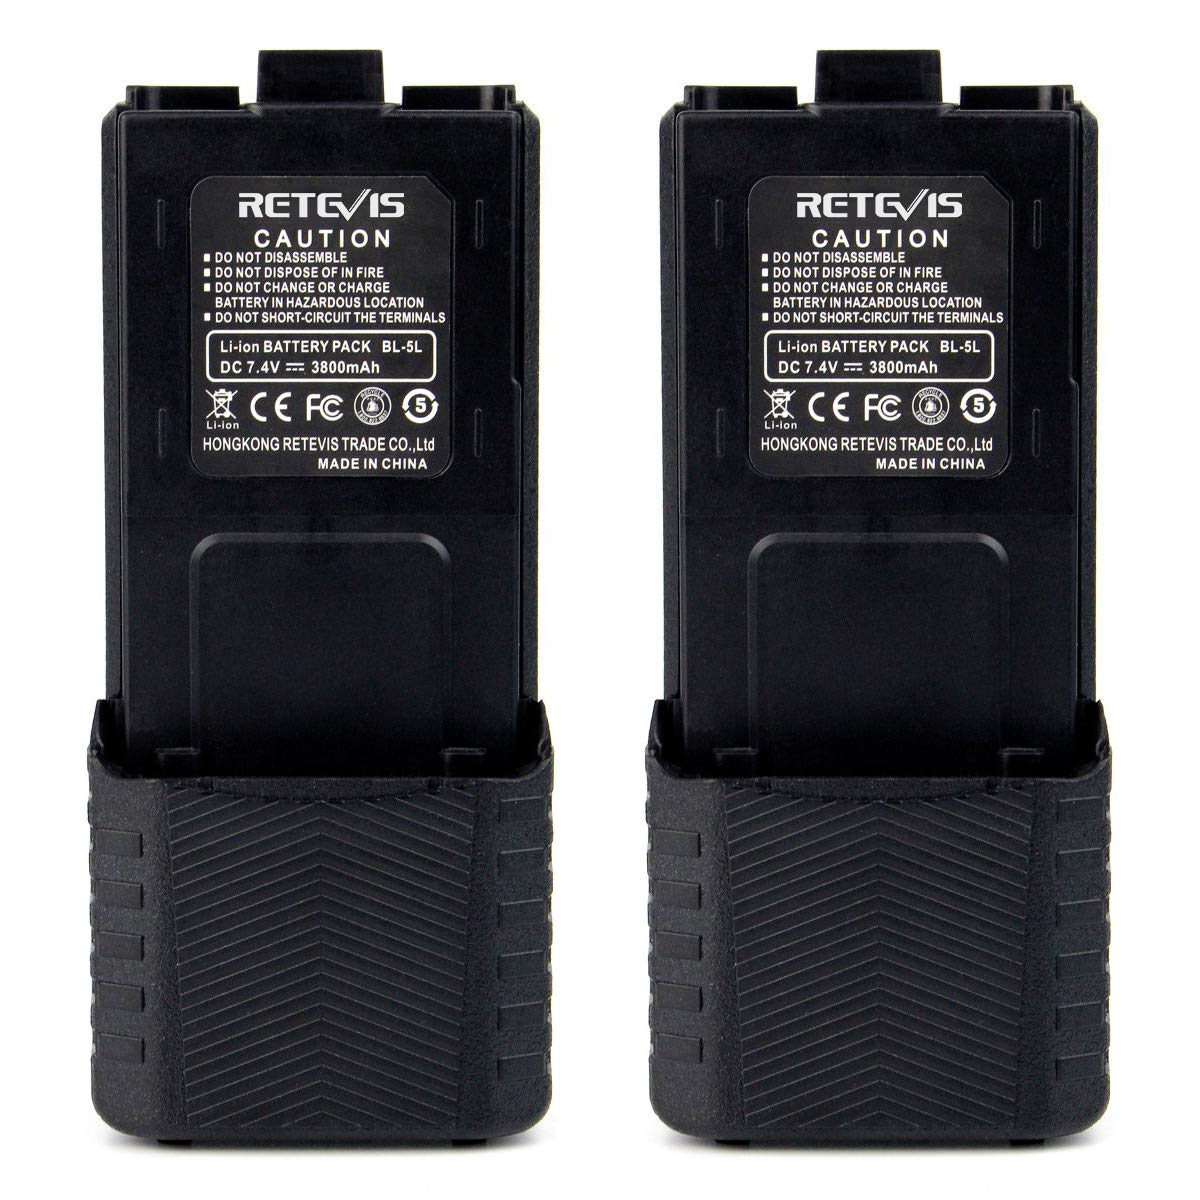 Retevis BL-5L 3800mAH 7.4V Extended Walkie Talkies Rechargeable Replacement Battery for Baofeng UV-5R Retevis RT-5R RT-5RV TYT 2 Way Radio(2 Pack)